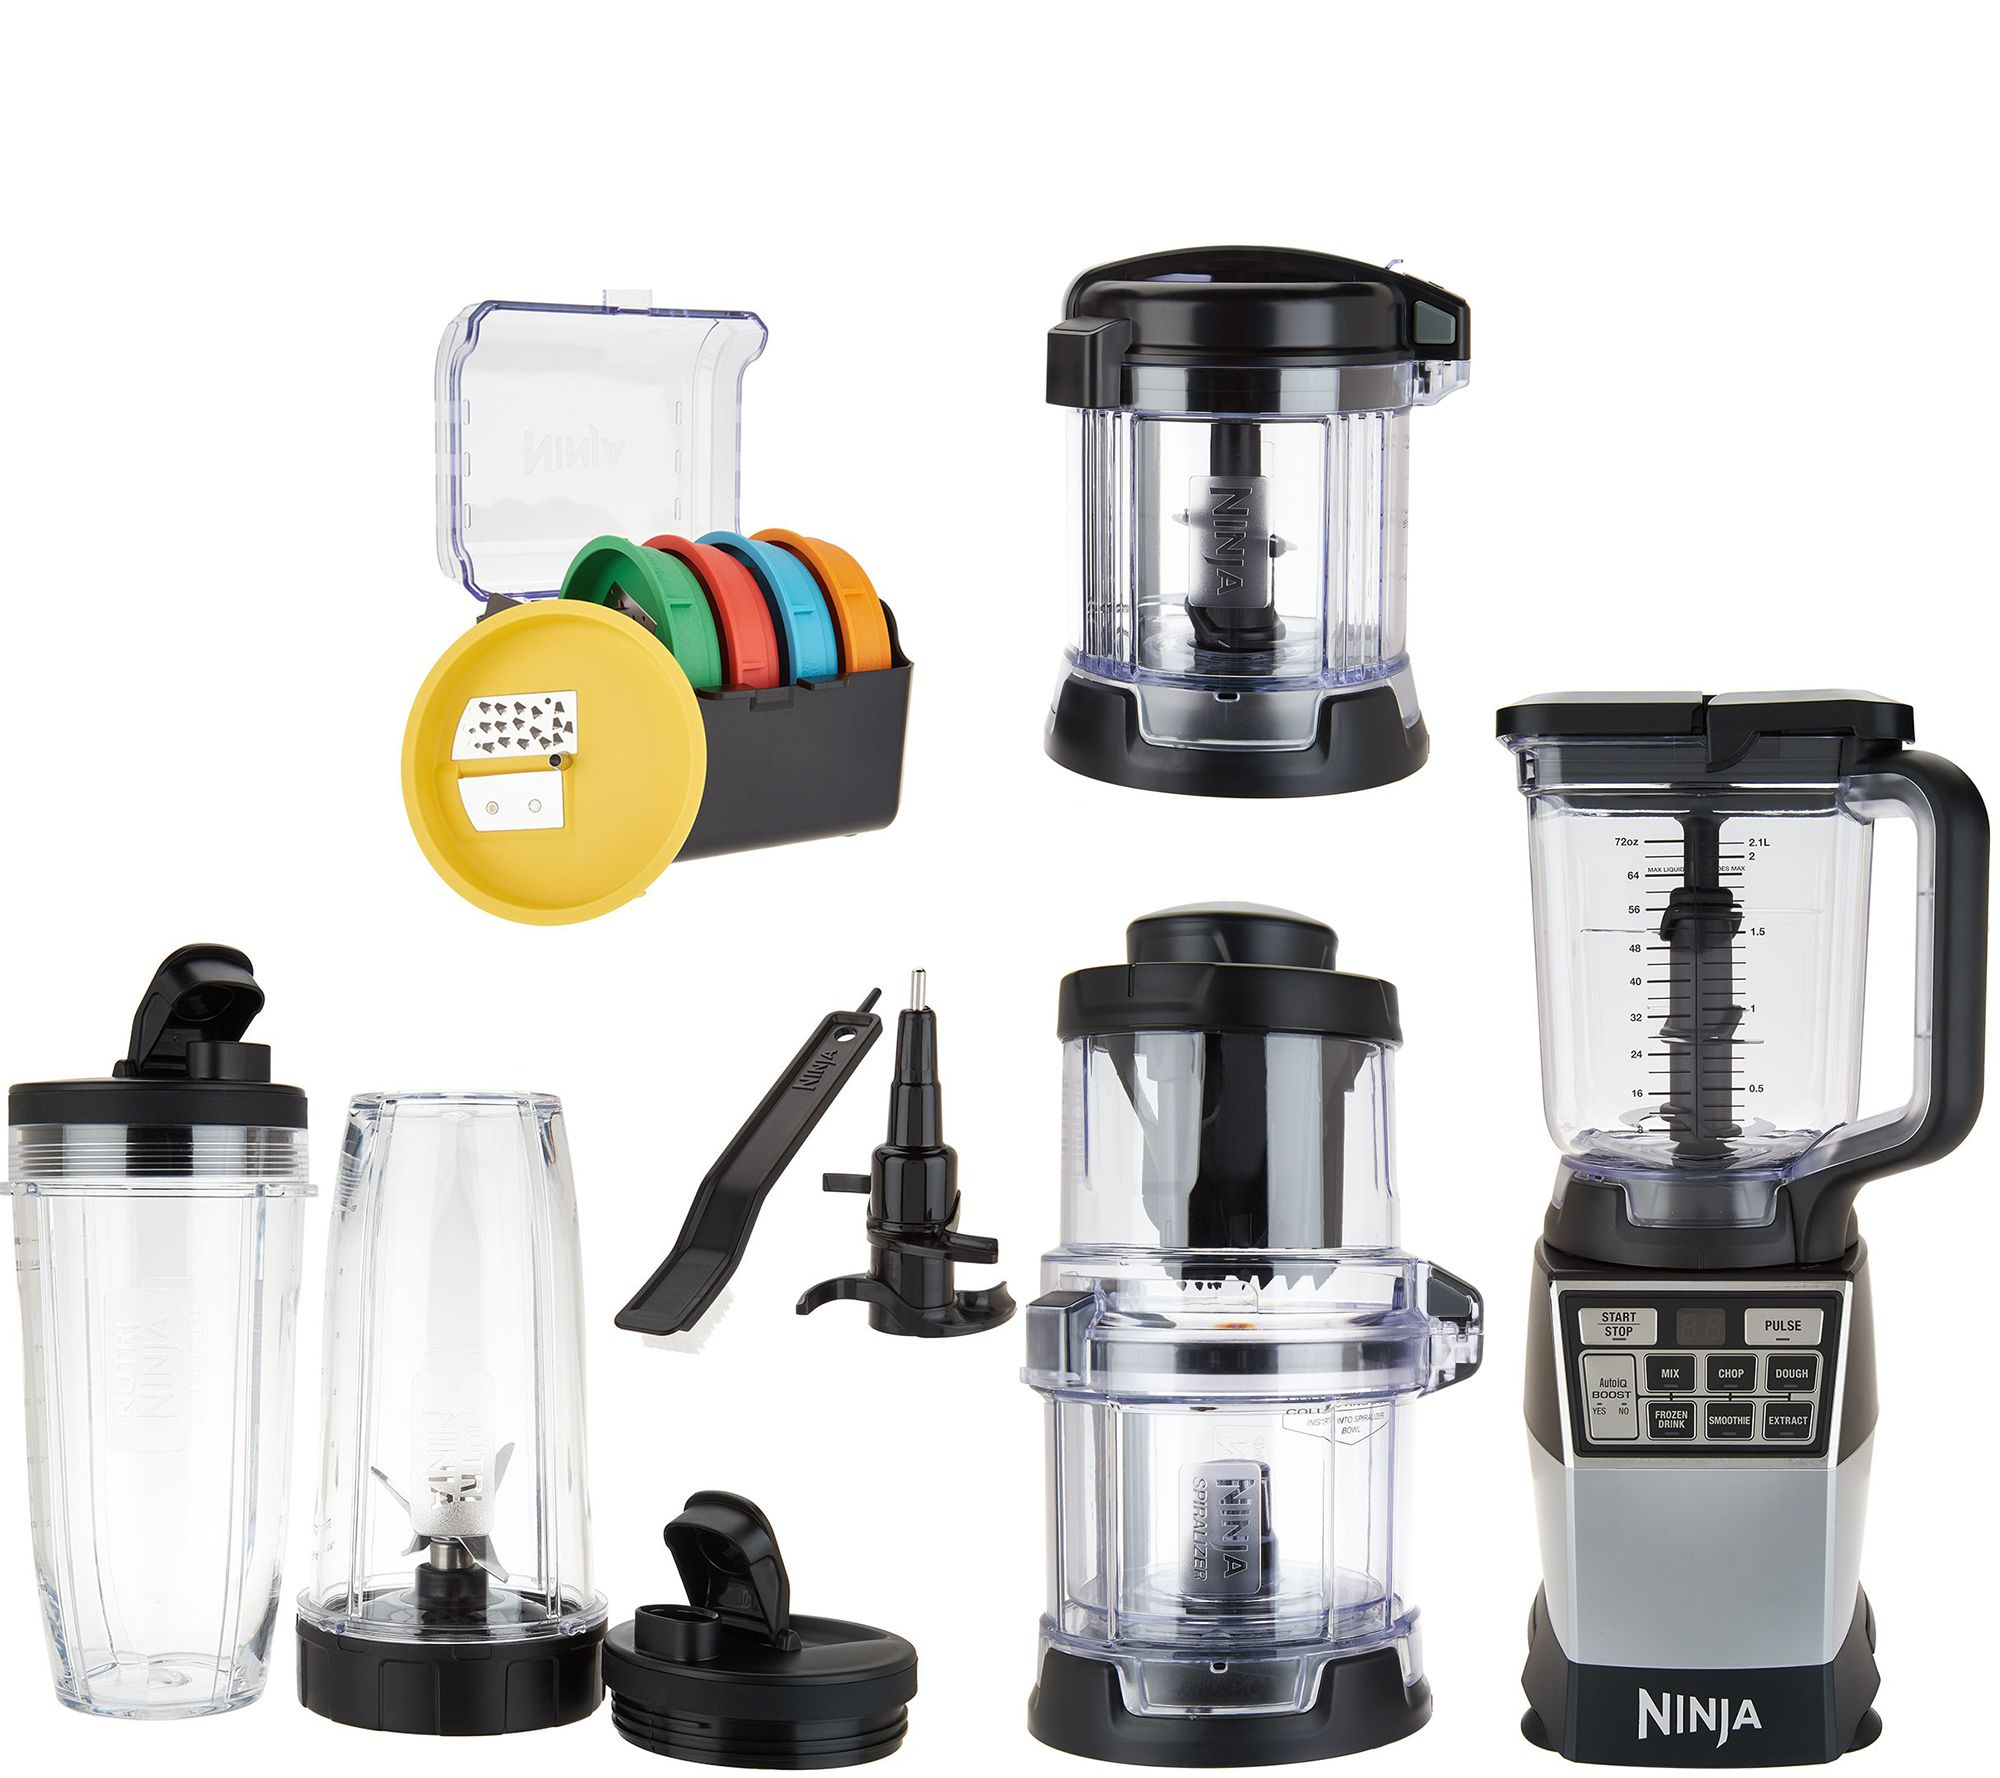 nutri kitchen system mega portrait ninja replacement blender inspiration watt reviews superb parts top sy professional